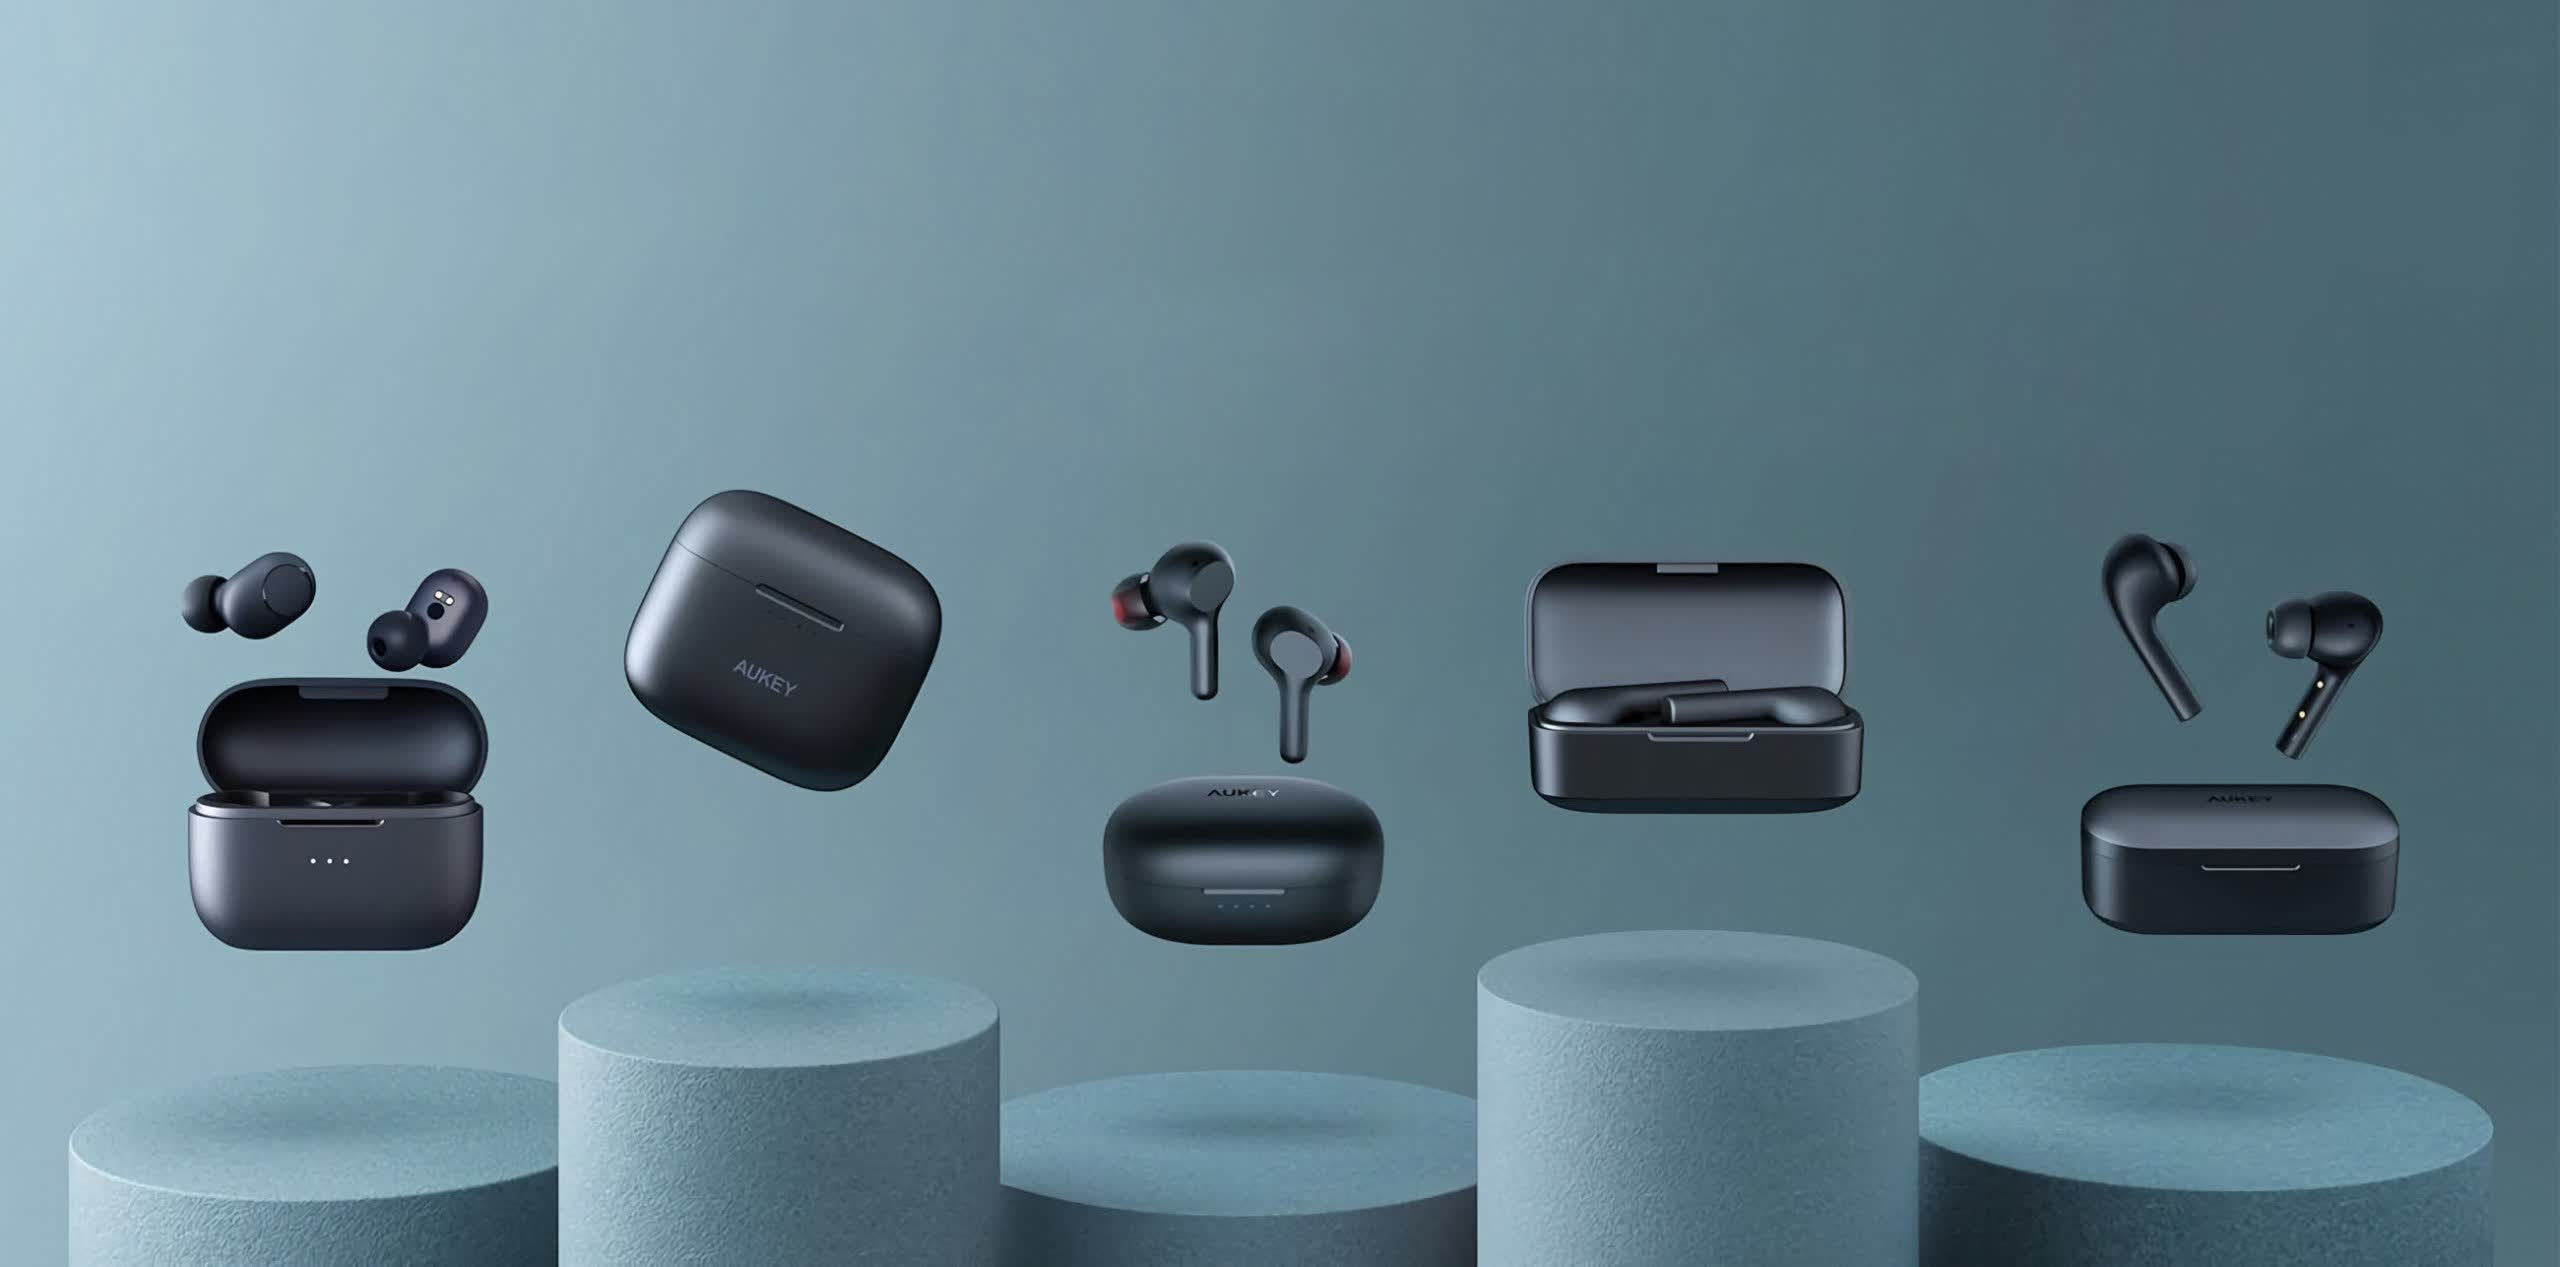 Aukey earbuds found listed on Amazon despite ban for fraudulent reviews